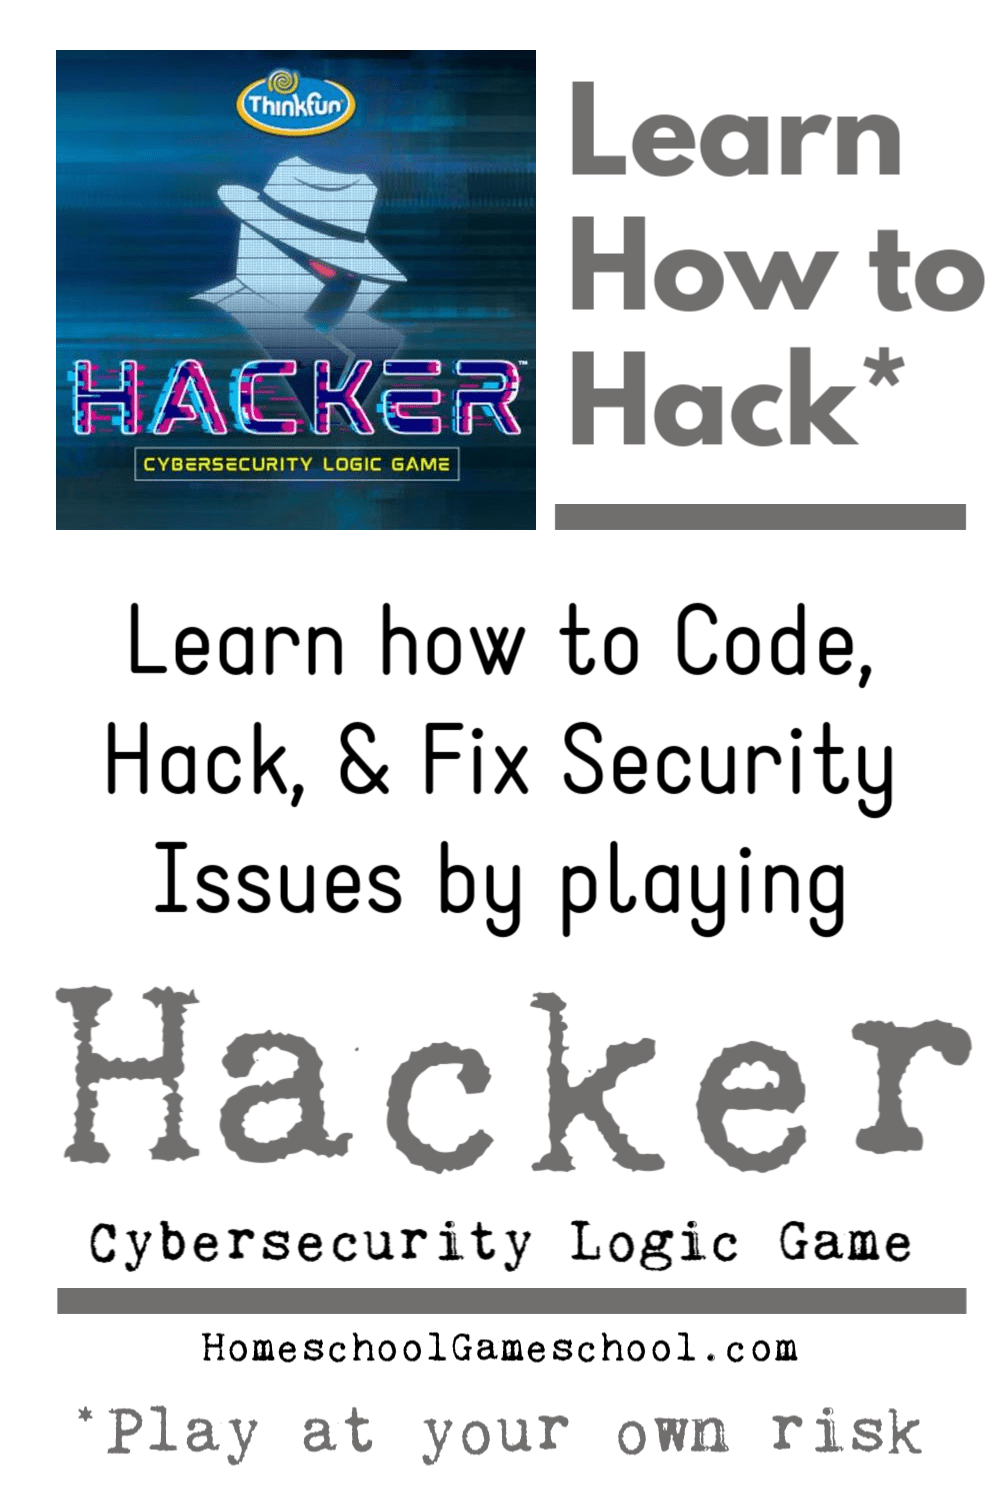 Hack Cybersecurity Logic Game